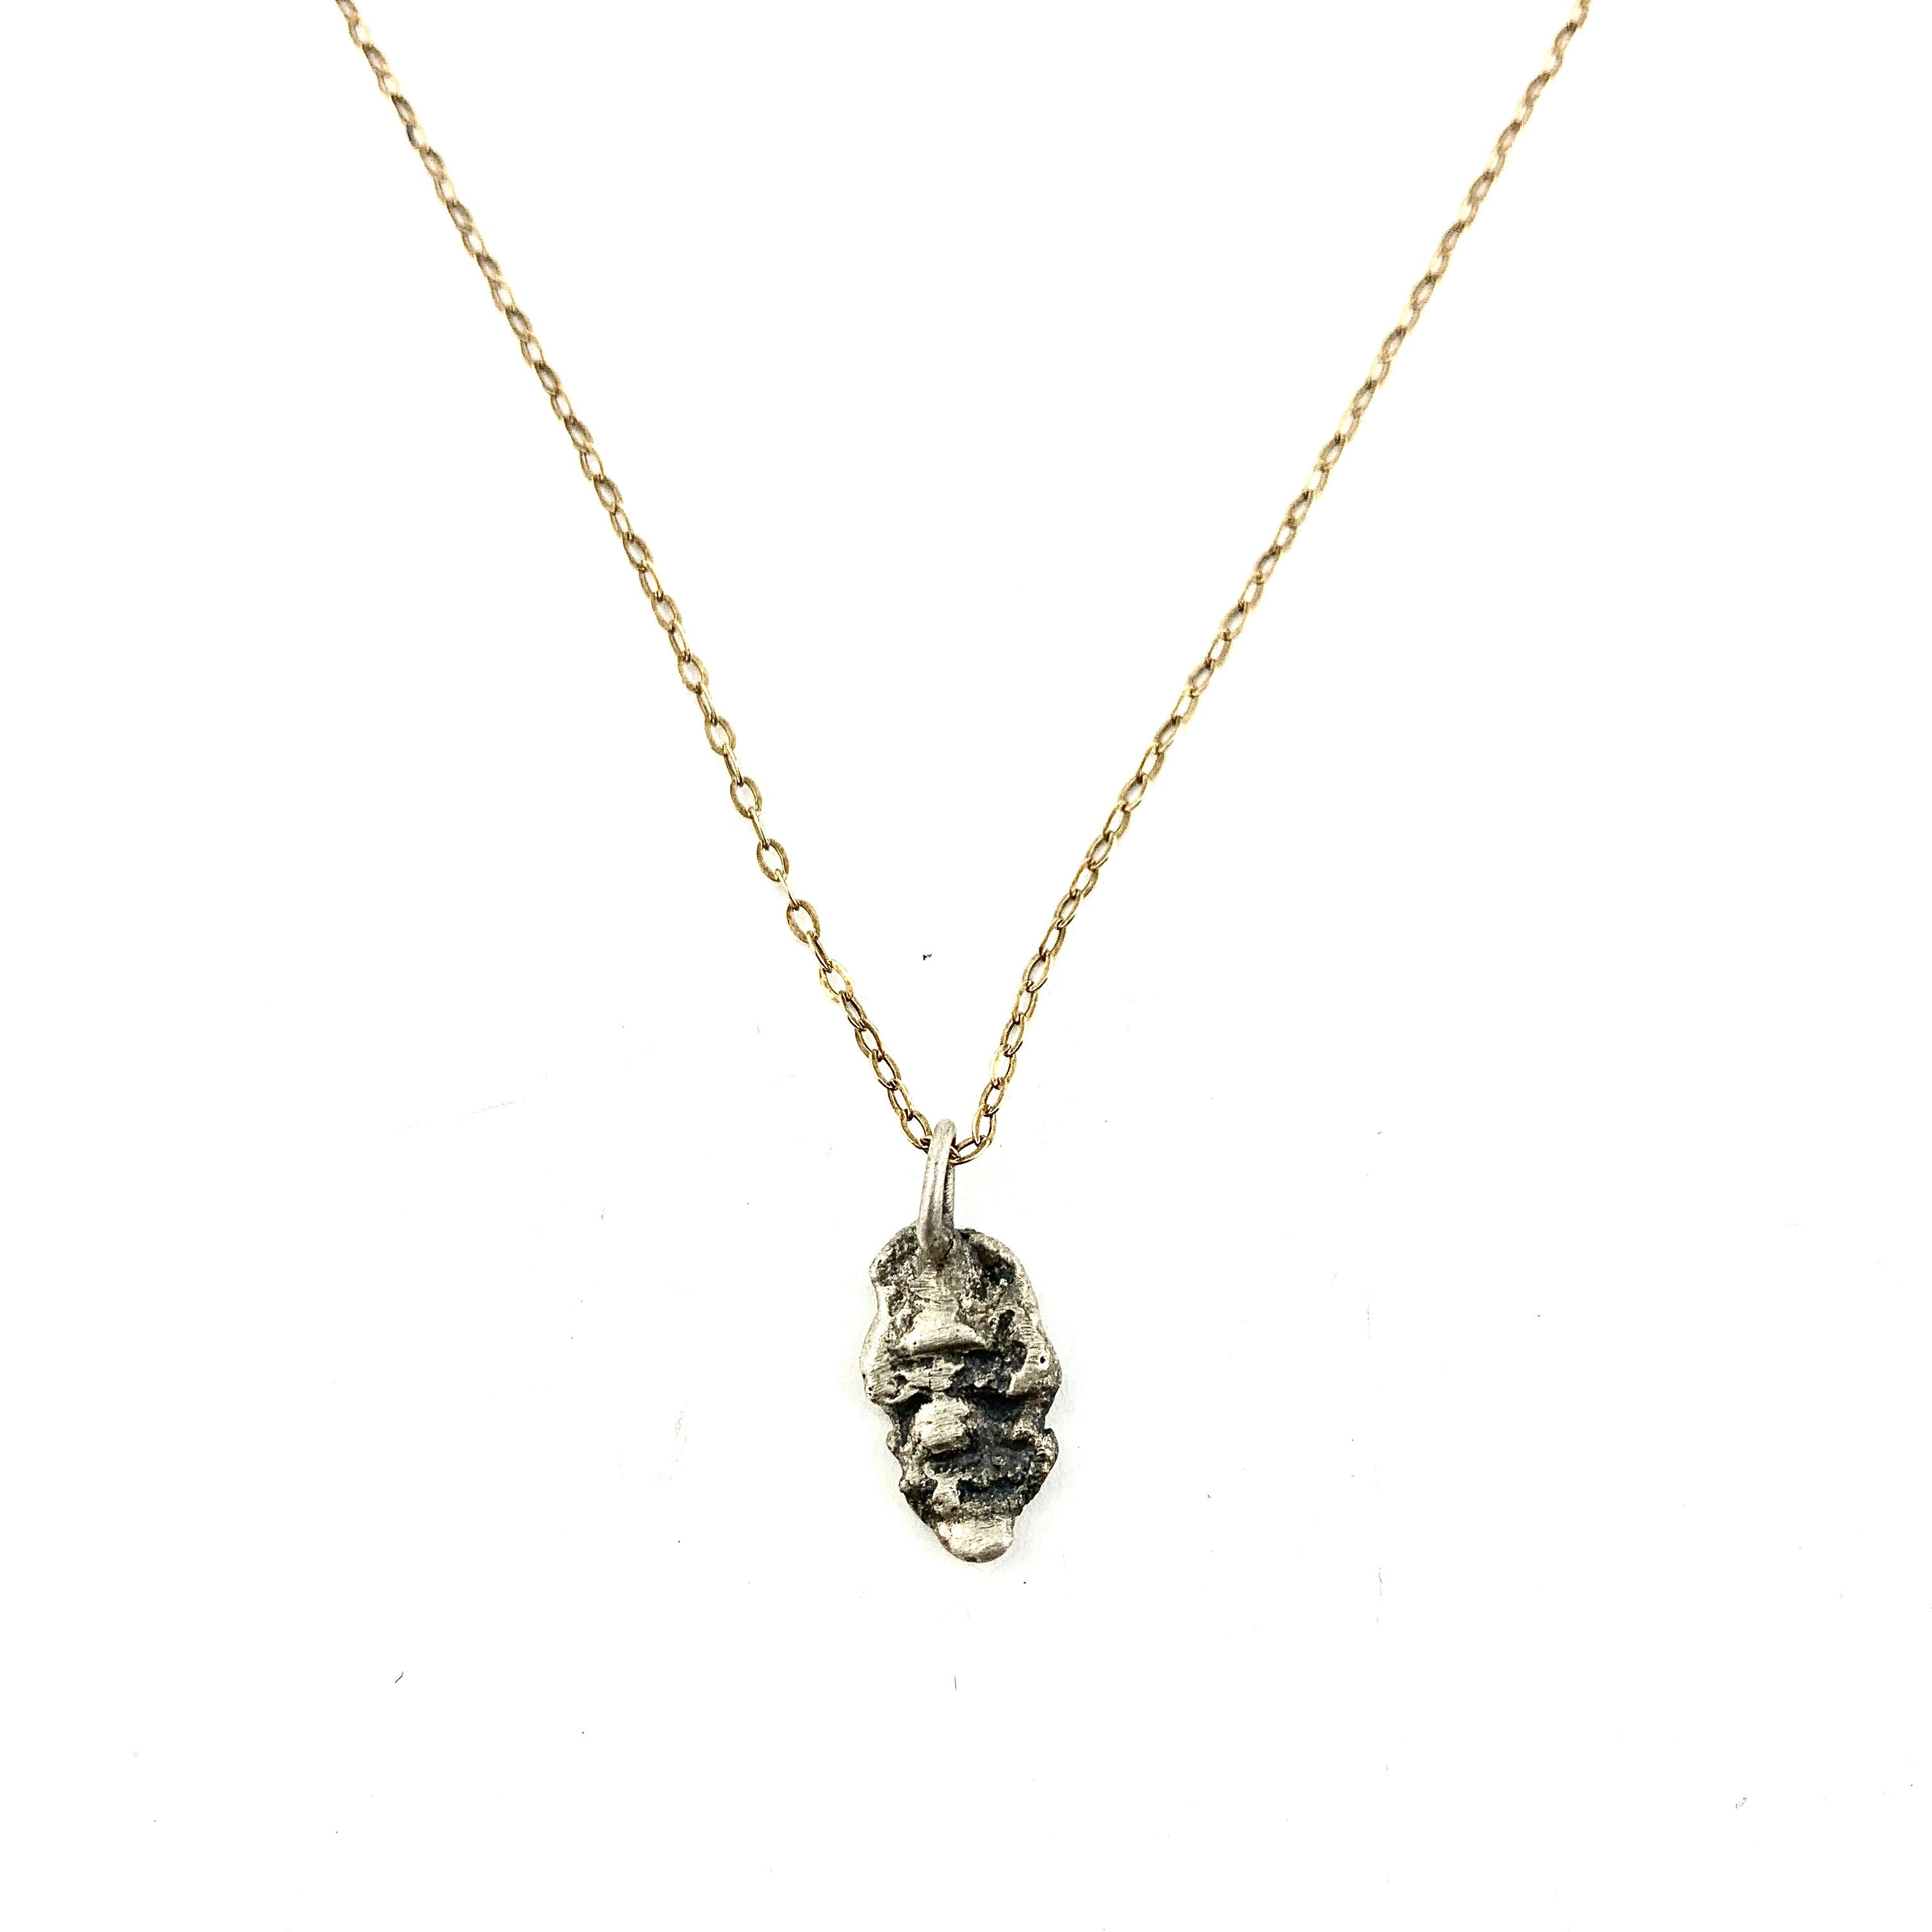 Talisman necklace with 18k vermeil chain and distress textured sterling pendant